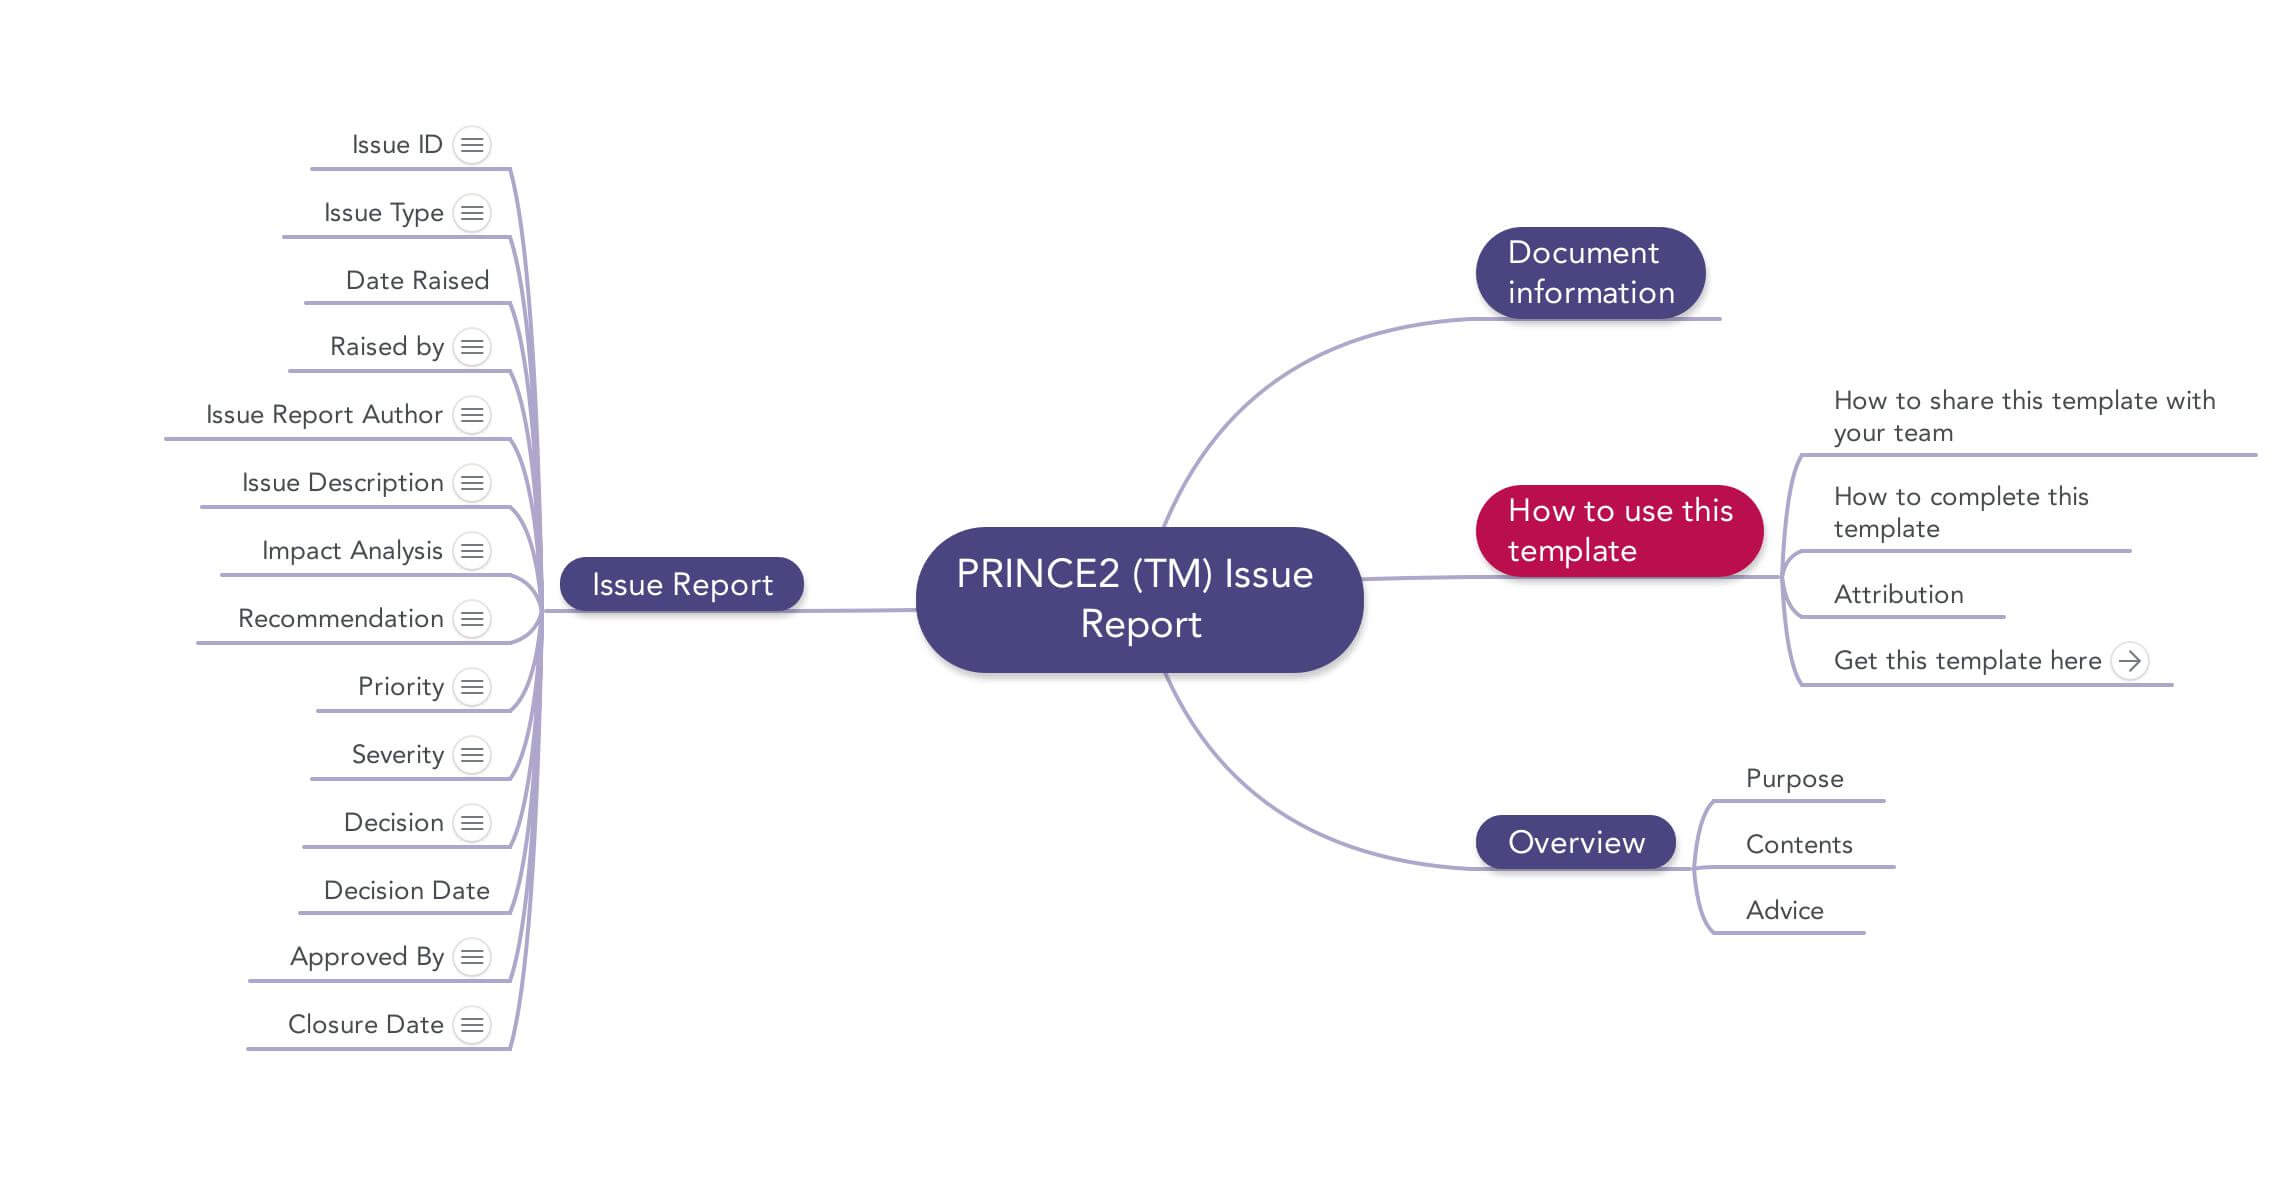 Prince2 Issue Report   Download Template intended for It Issue Report Template